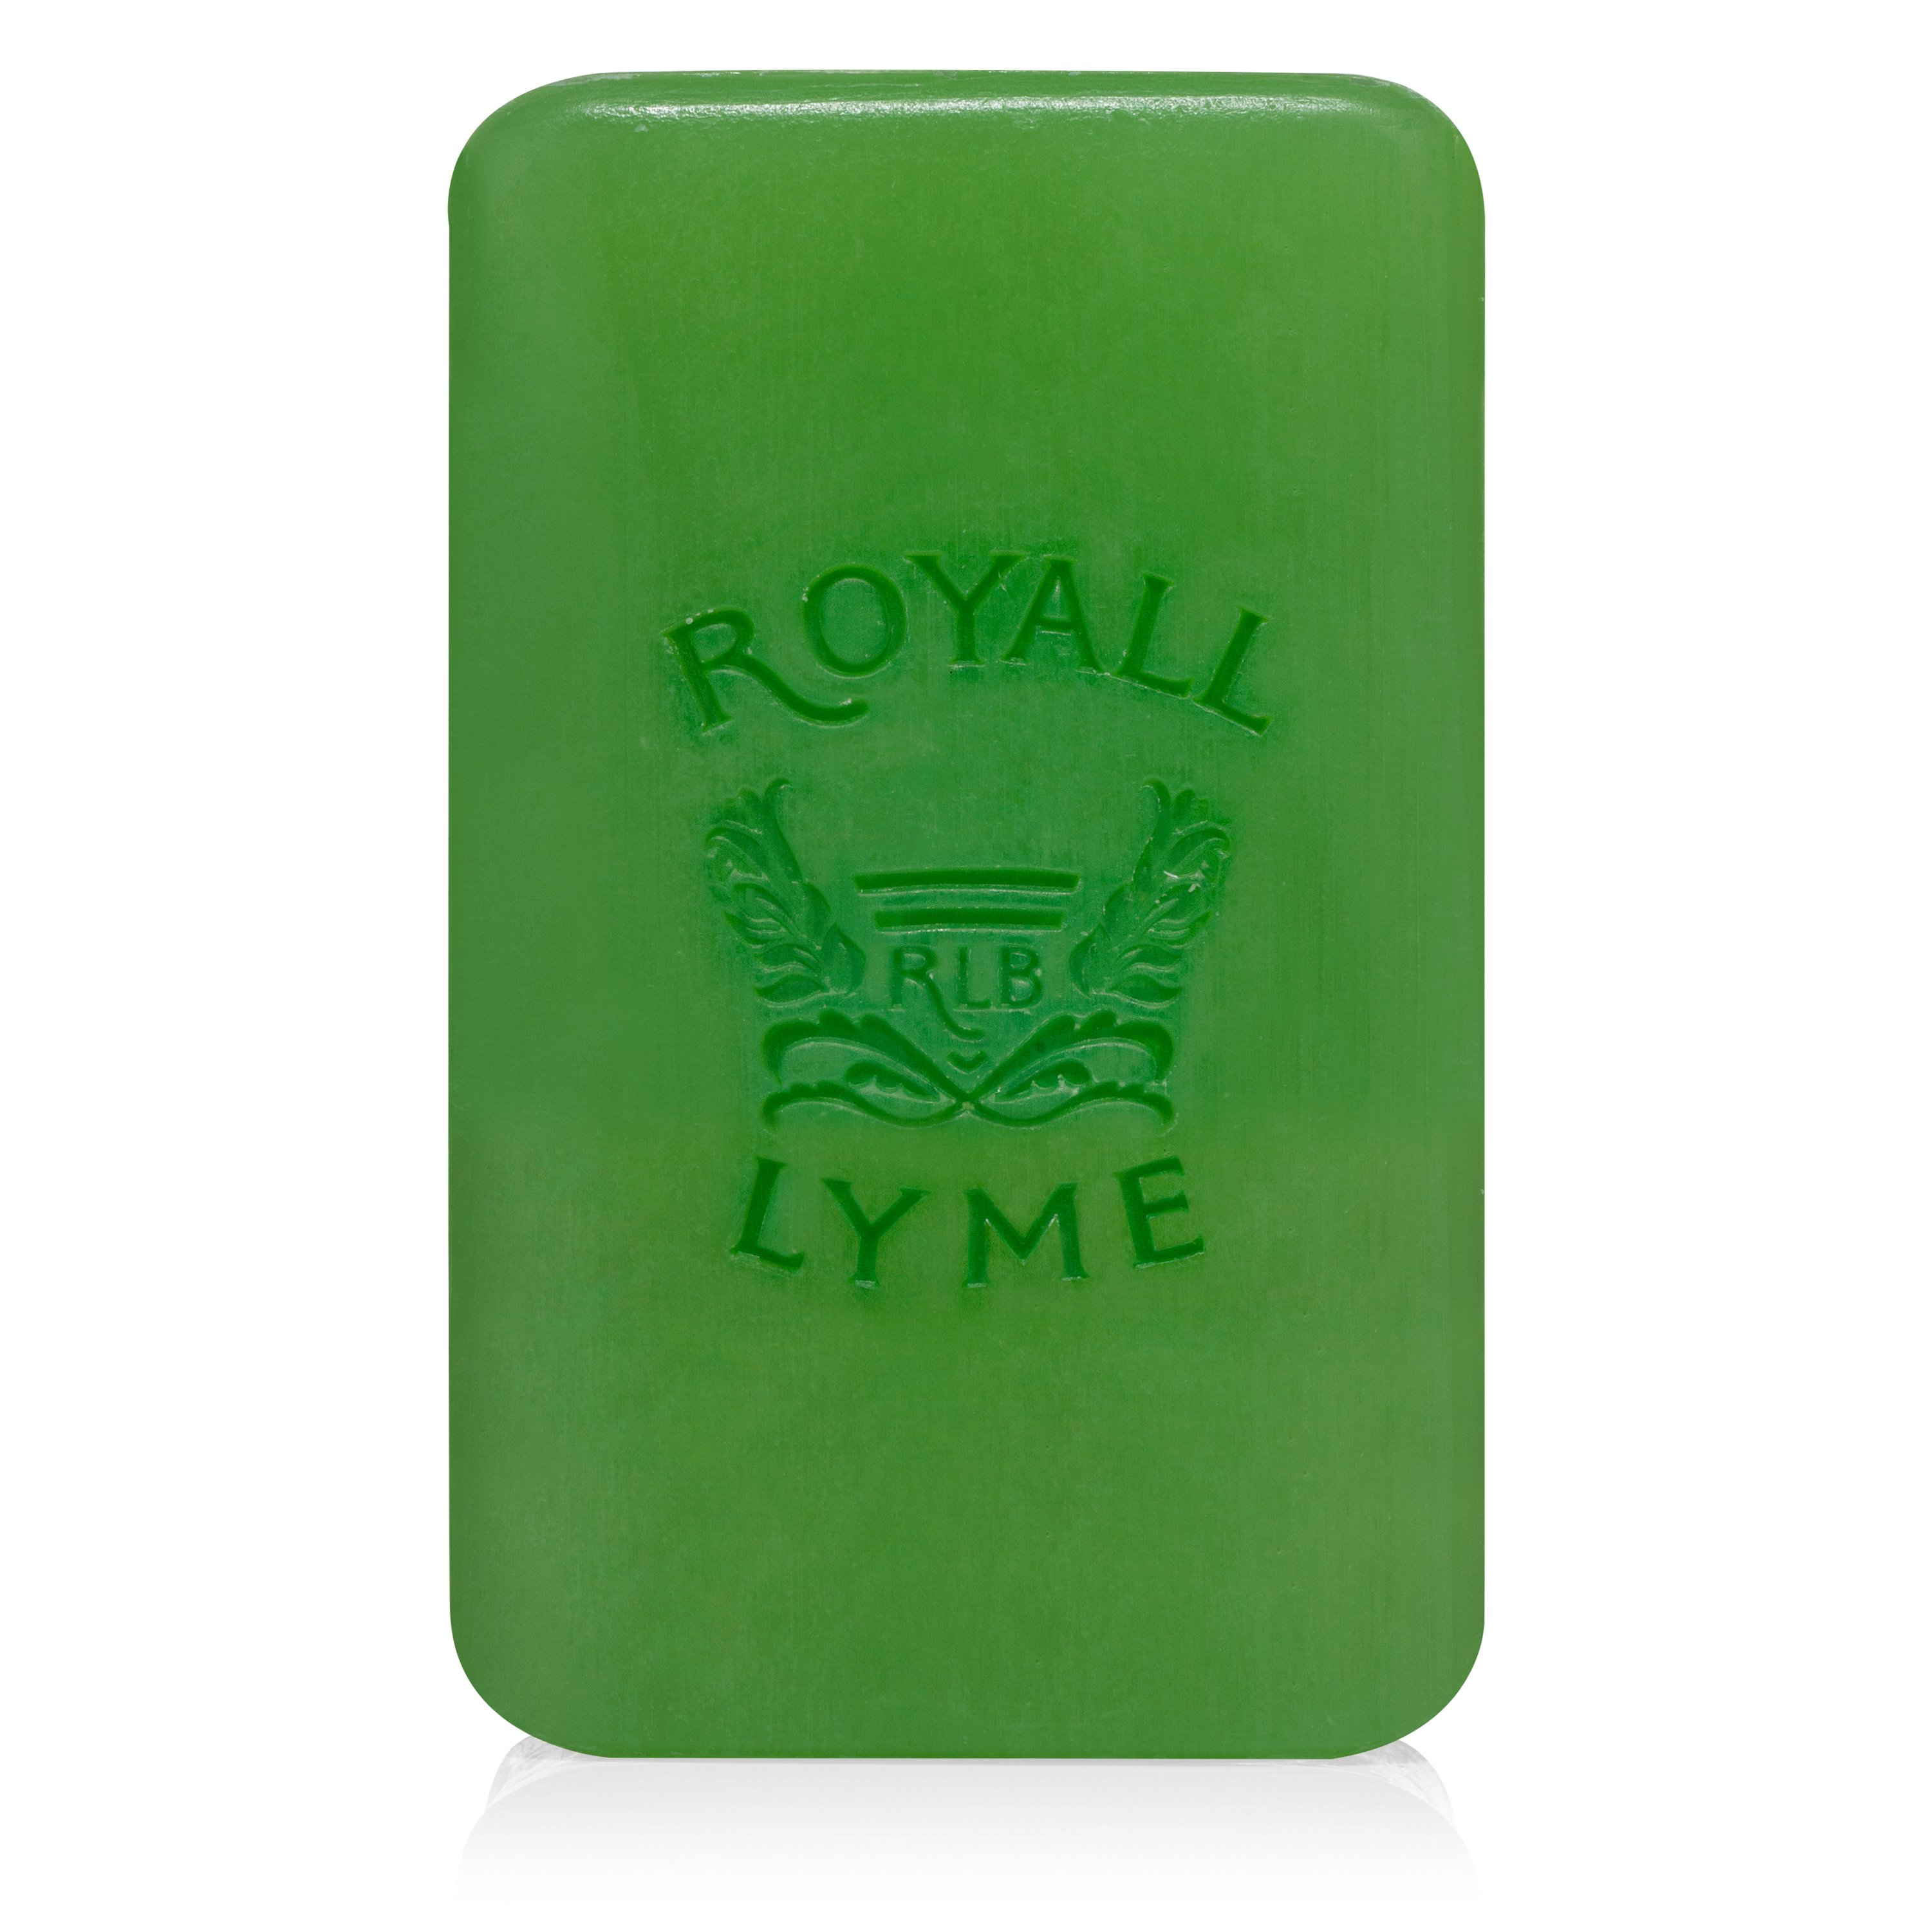 Royall Lyme Bermuda Glycerin Soap 224g - Made in the USA